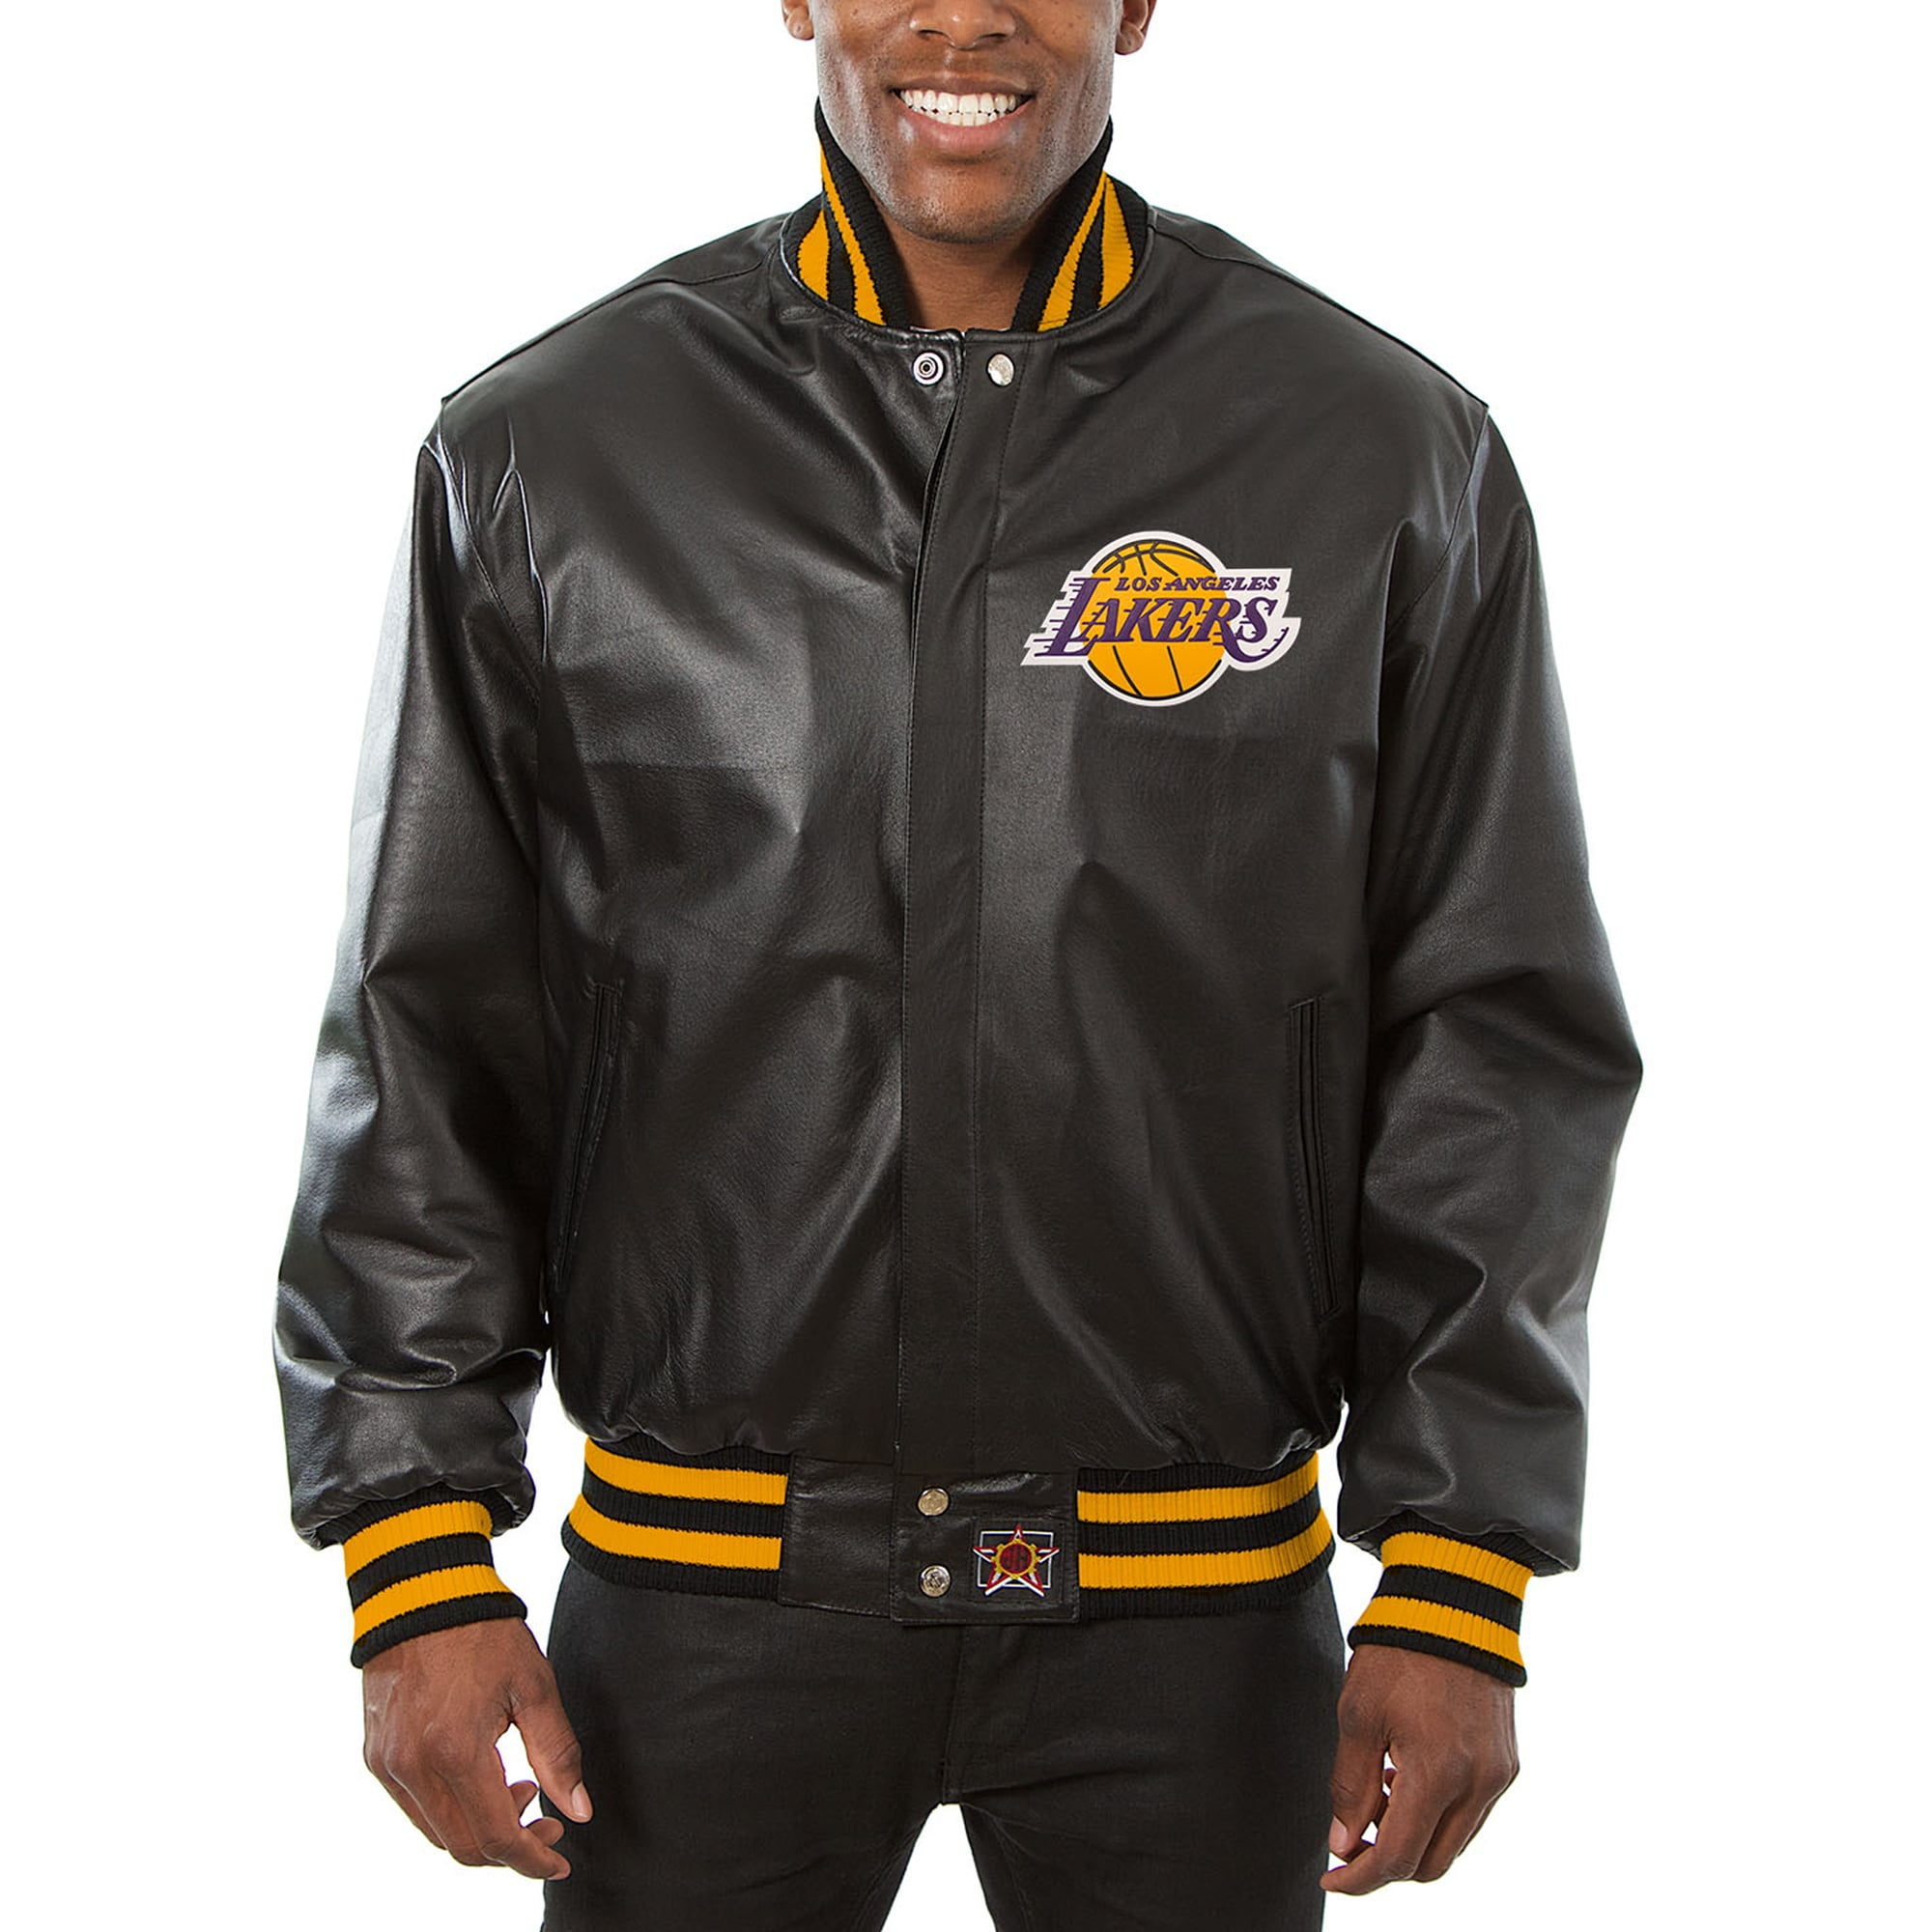 Los Angeles Lakers JH Design Big & Tall All-Leather Full-Snap Jacket - Black